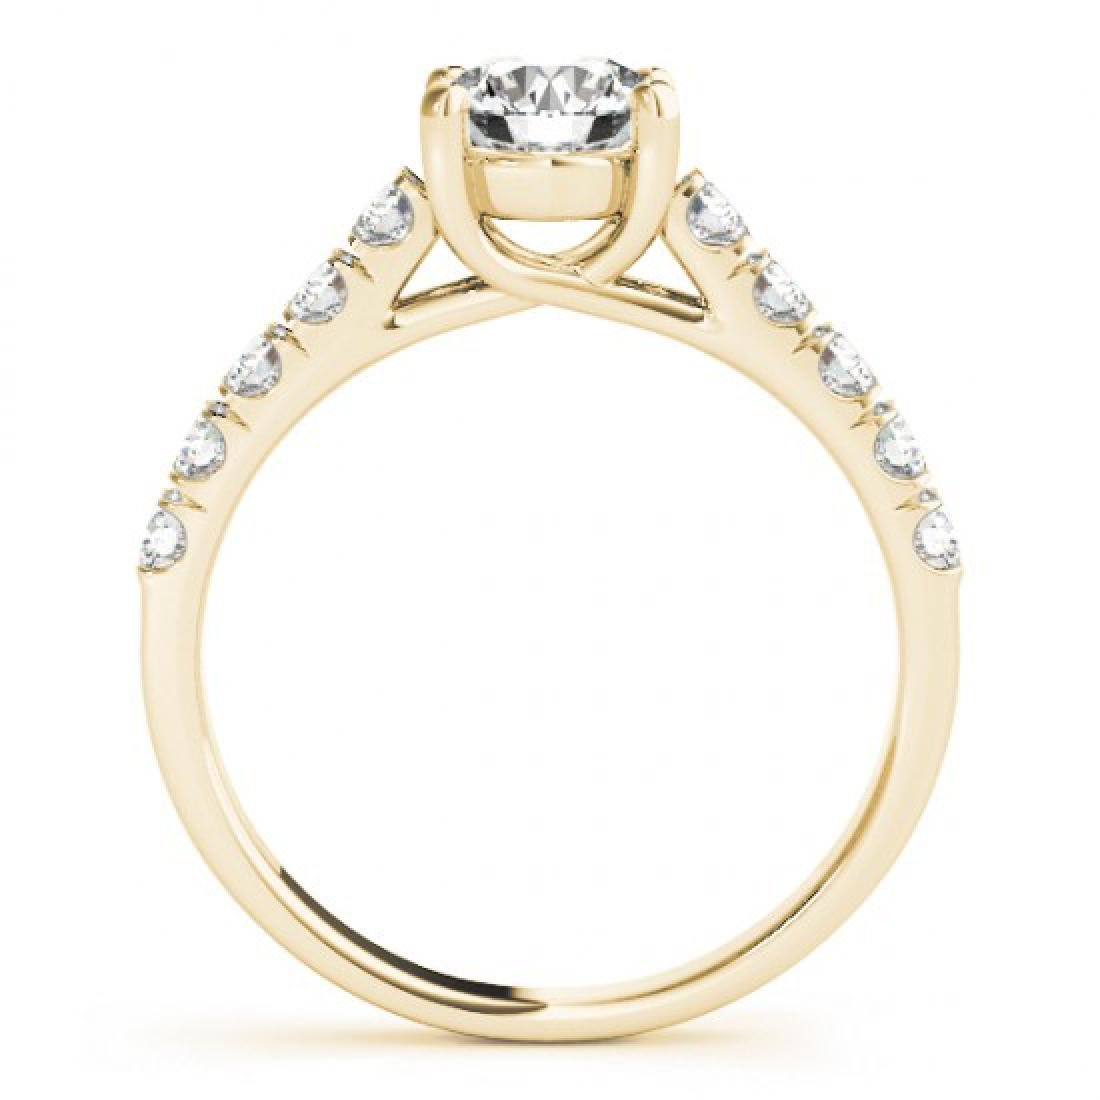 2.1 CTW Certified VS/SI Diamond Solitaire Ring 14K - 2